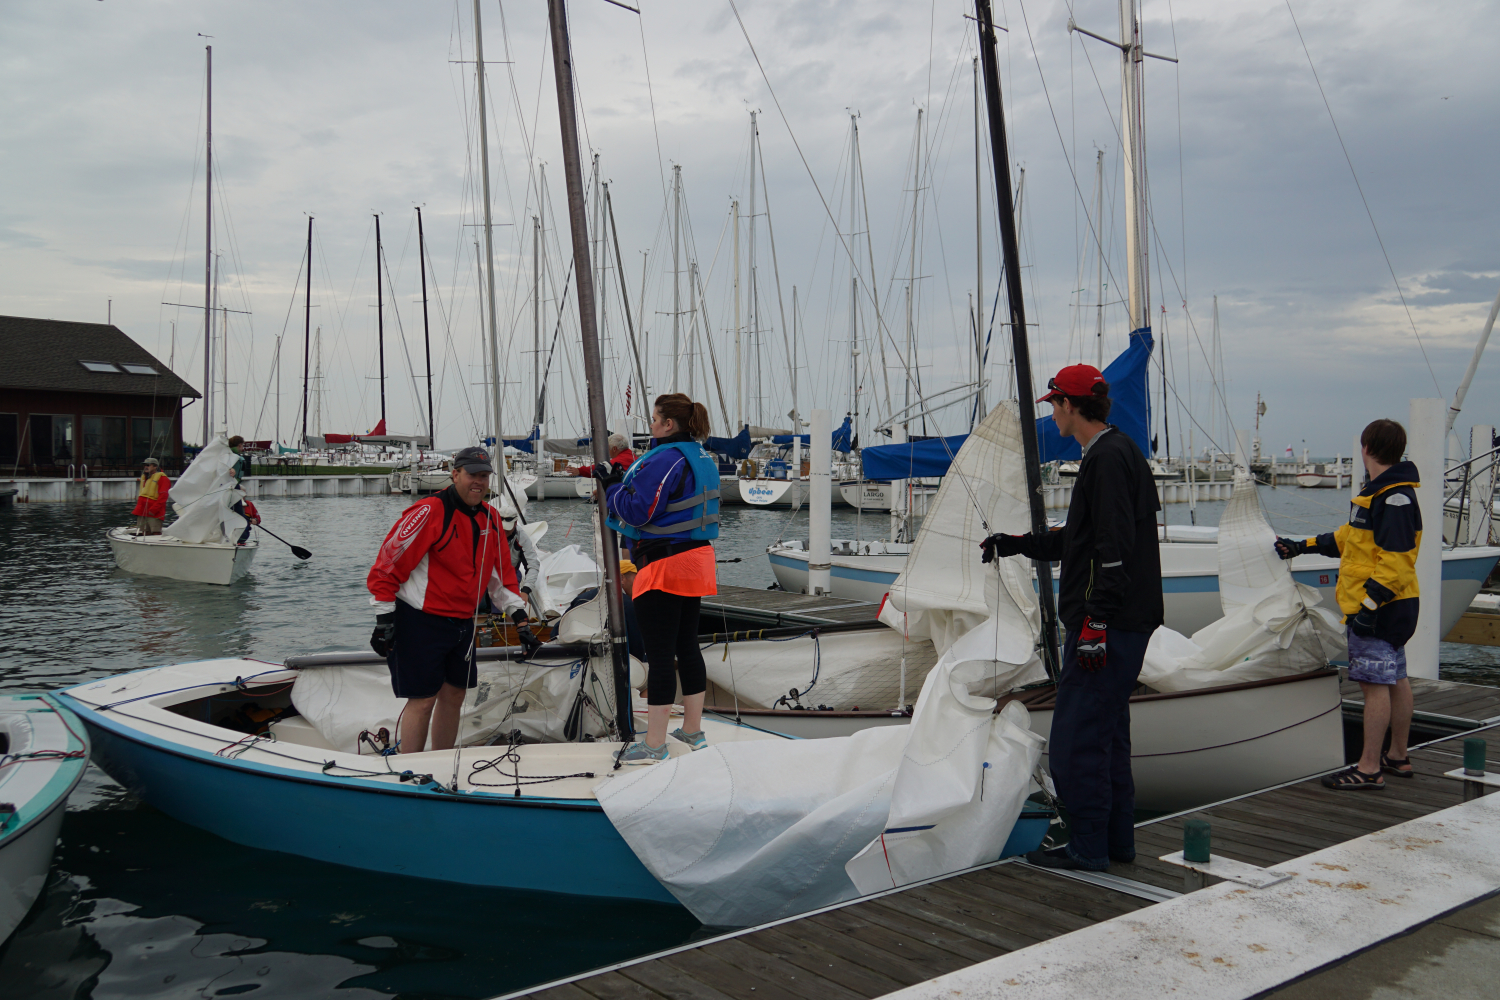 getting ready to sail at yacht club